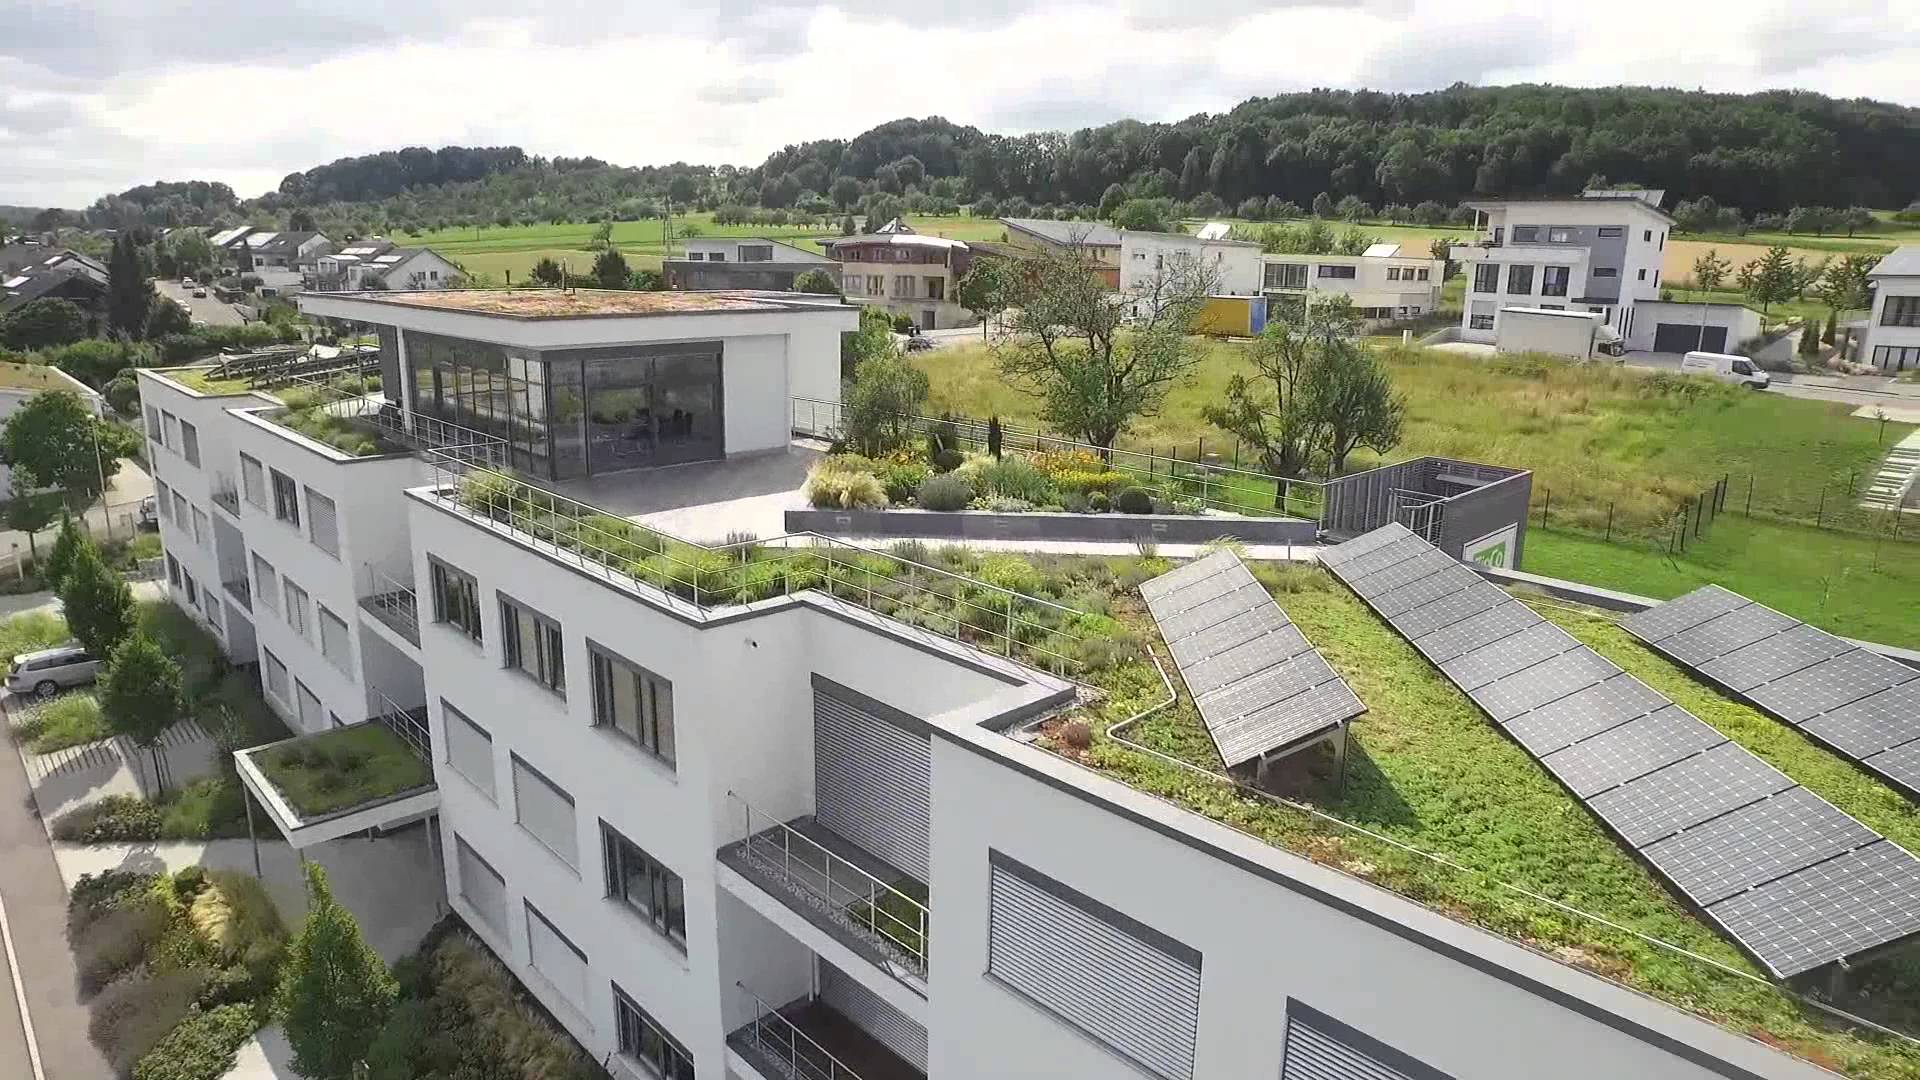 Green Roof Systems, this building shows the full range! - YouTube